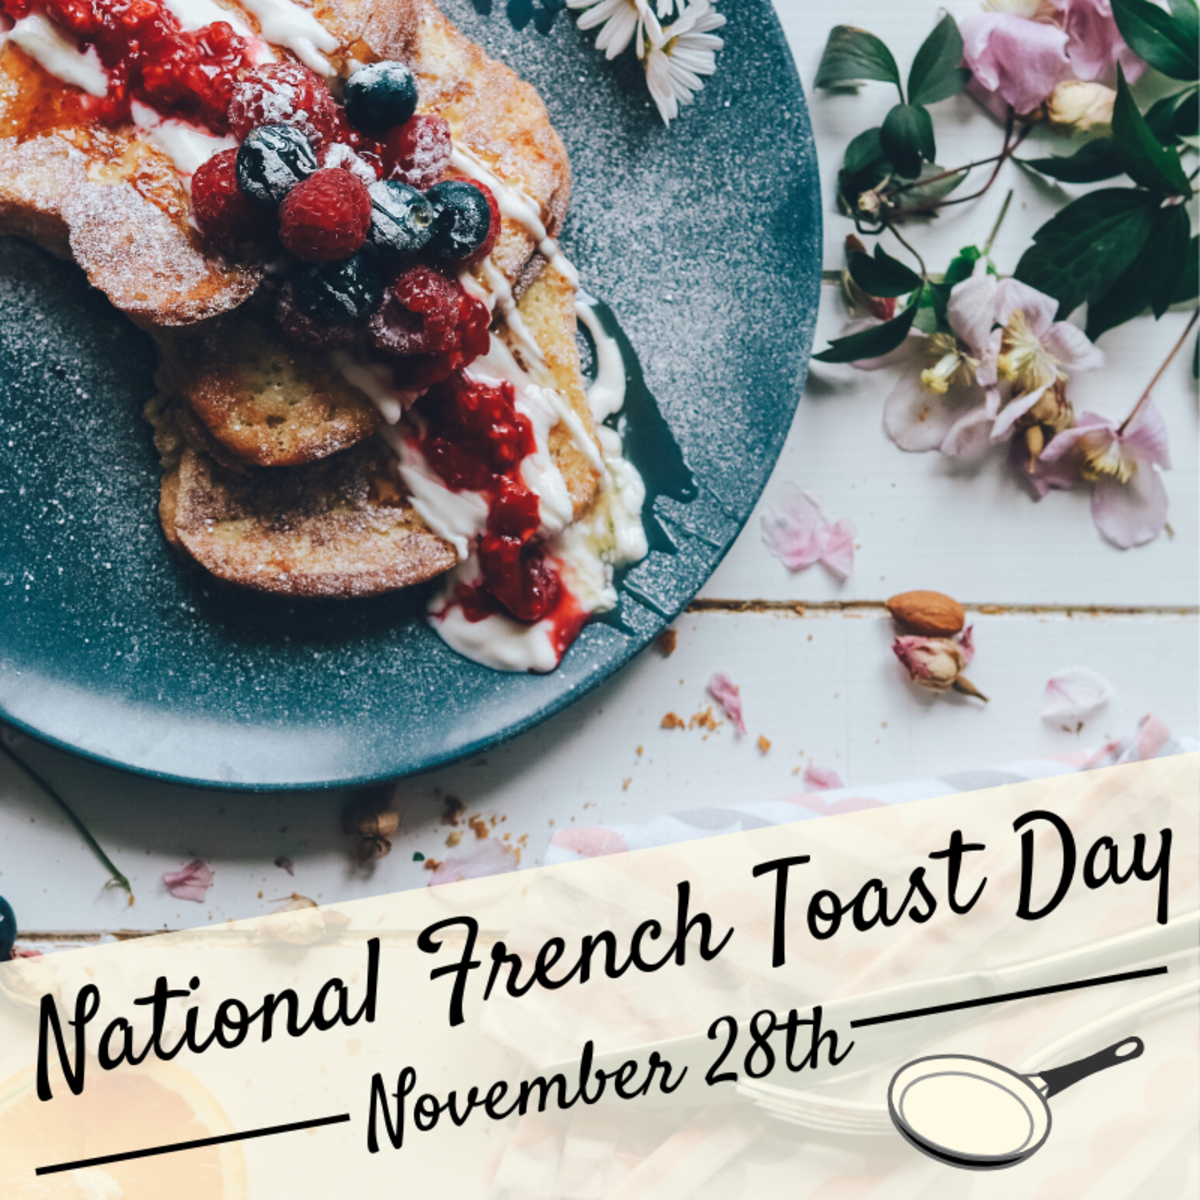 November 28th is National French Toast Day. How will you celebrate?